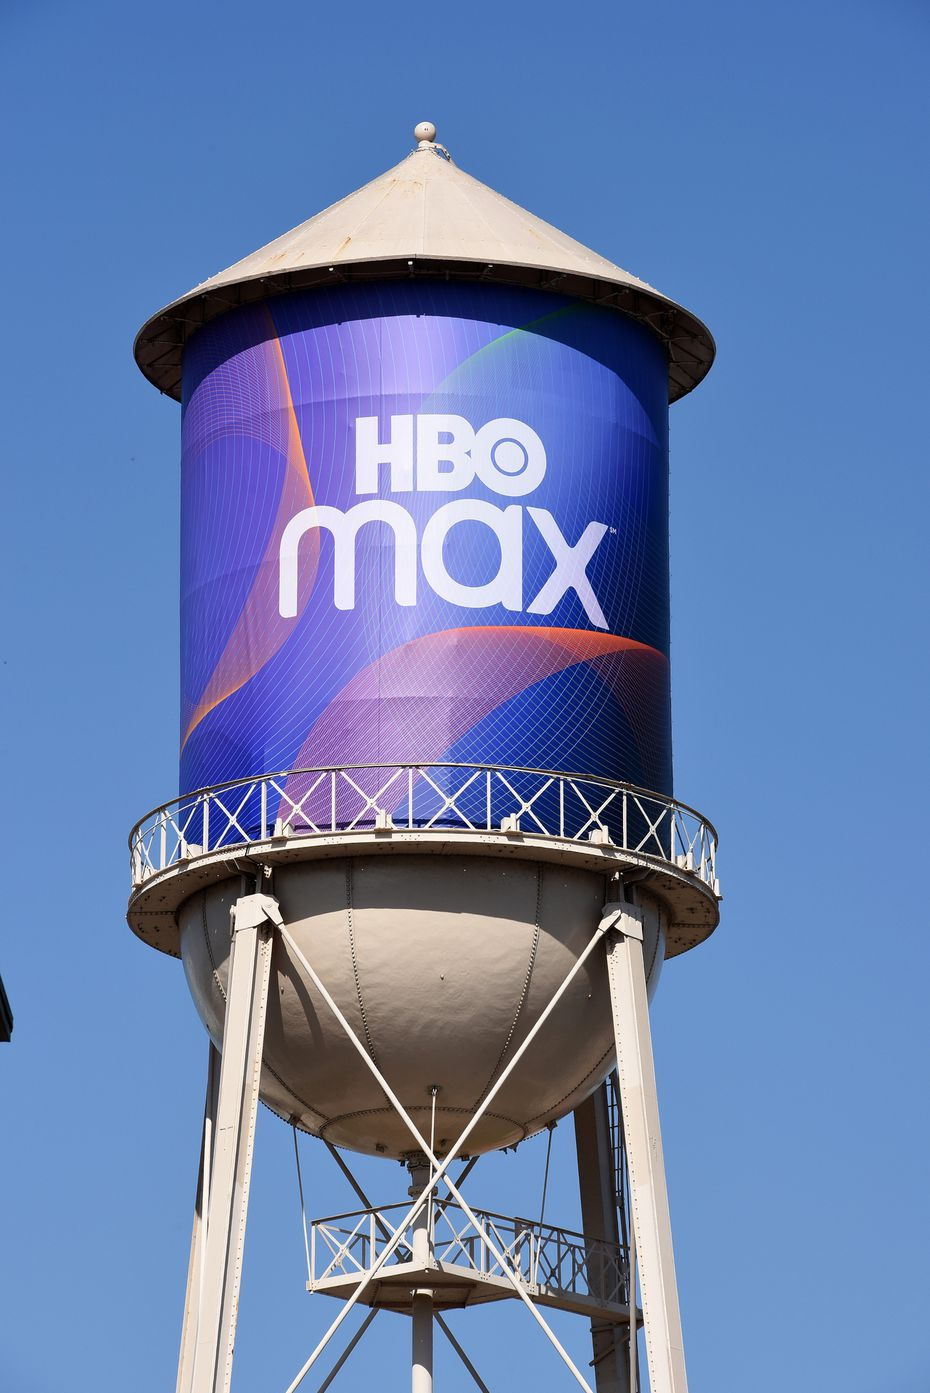 HBO Max, the latest streaming service from AT&T, launches on Wednesday. The company is preparing to go toe-to-toe with other streaming giants like Netflix and Hulu.